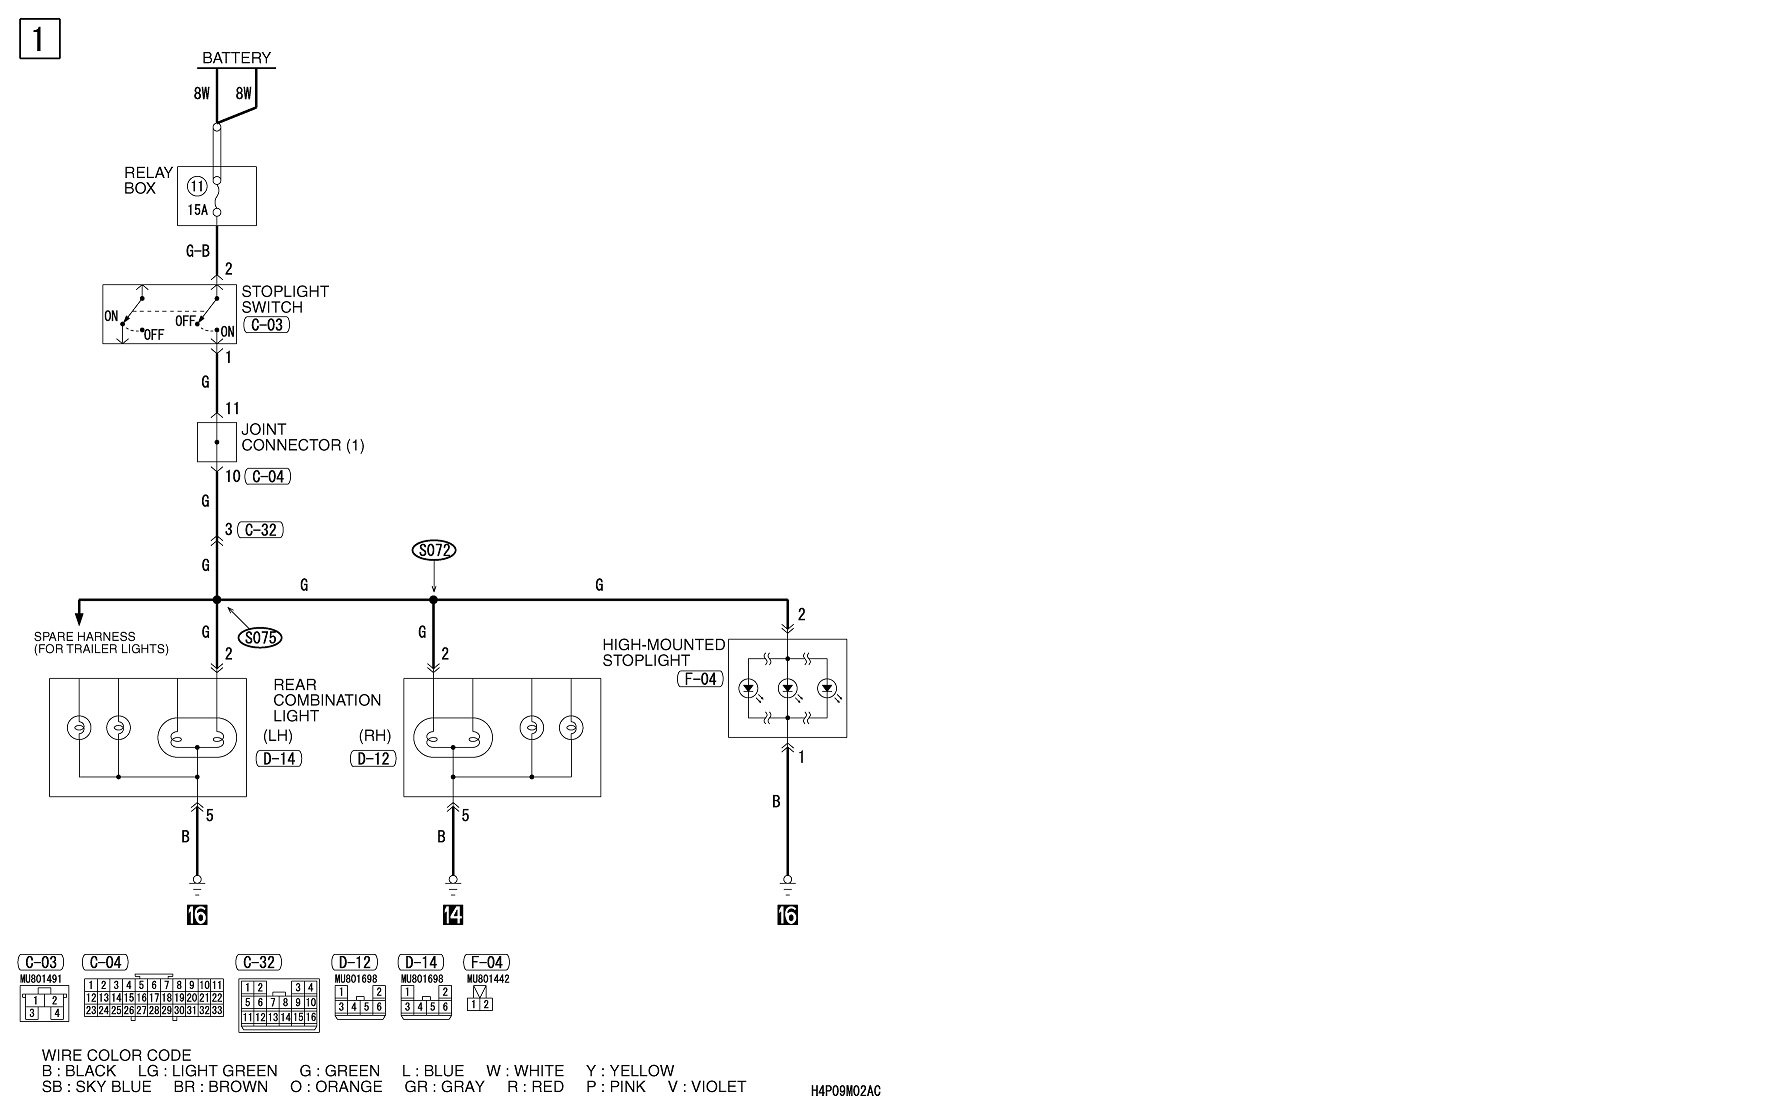 I Need A Wiring Diagram : I need wiring diagram for mitsubishi endeavor